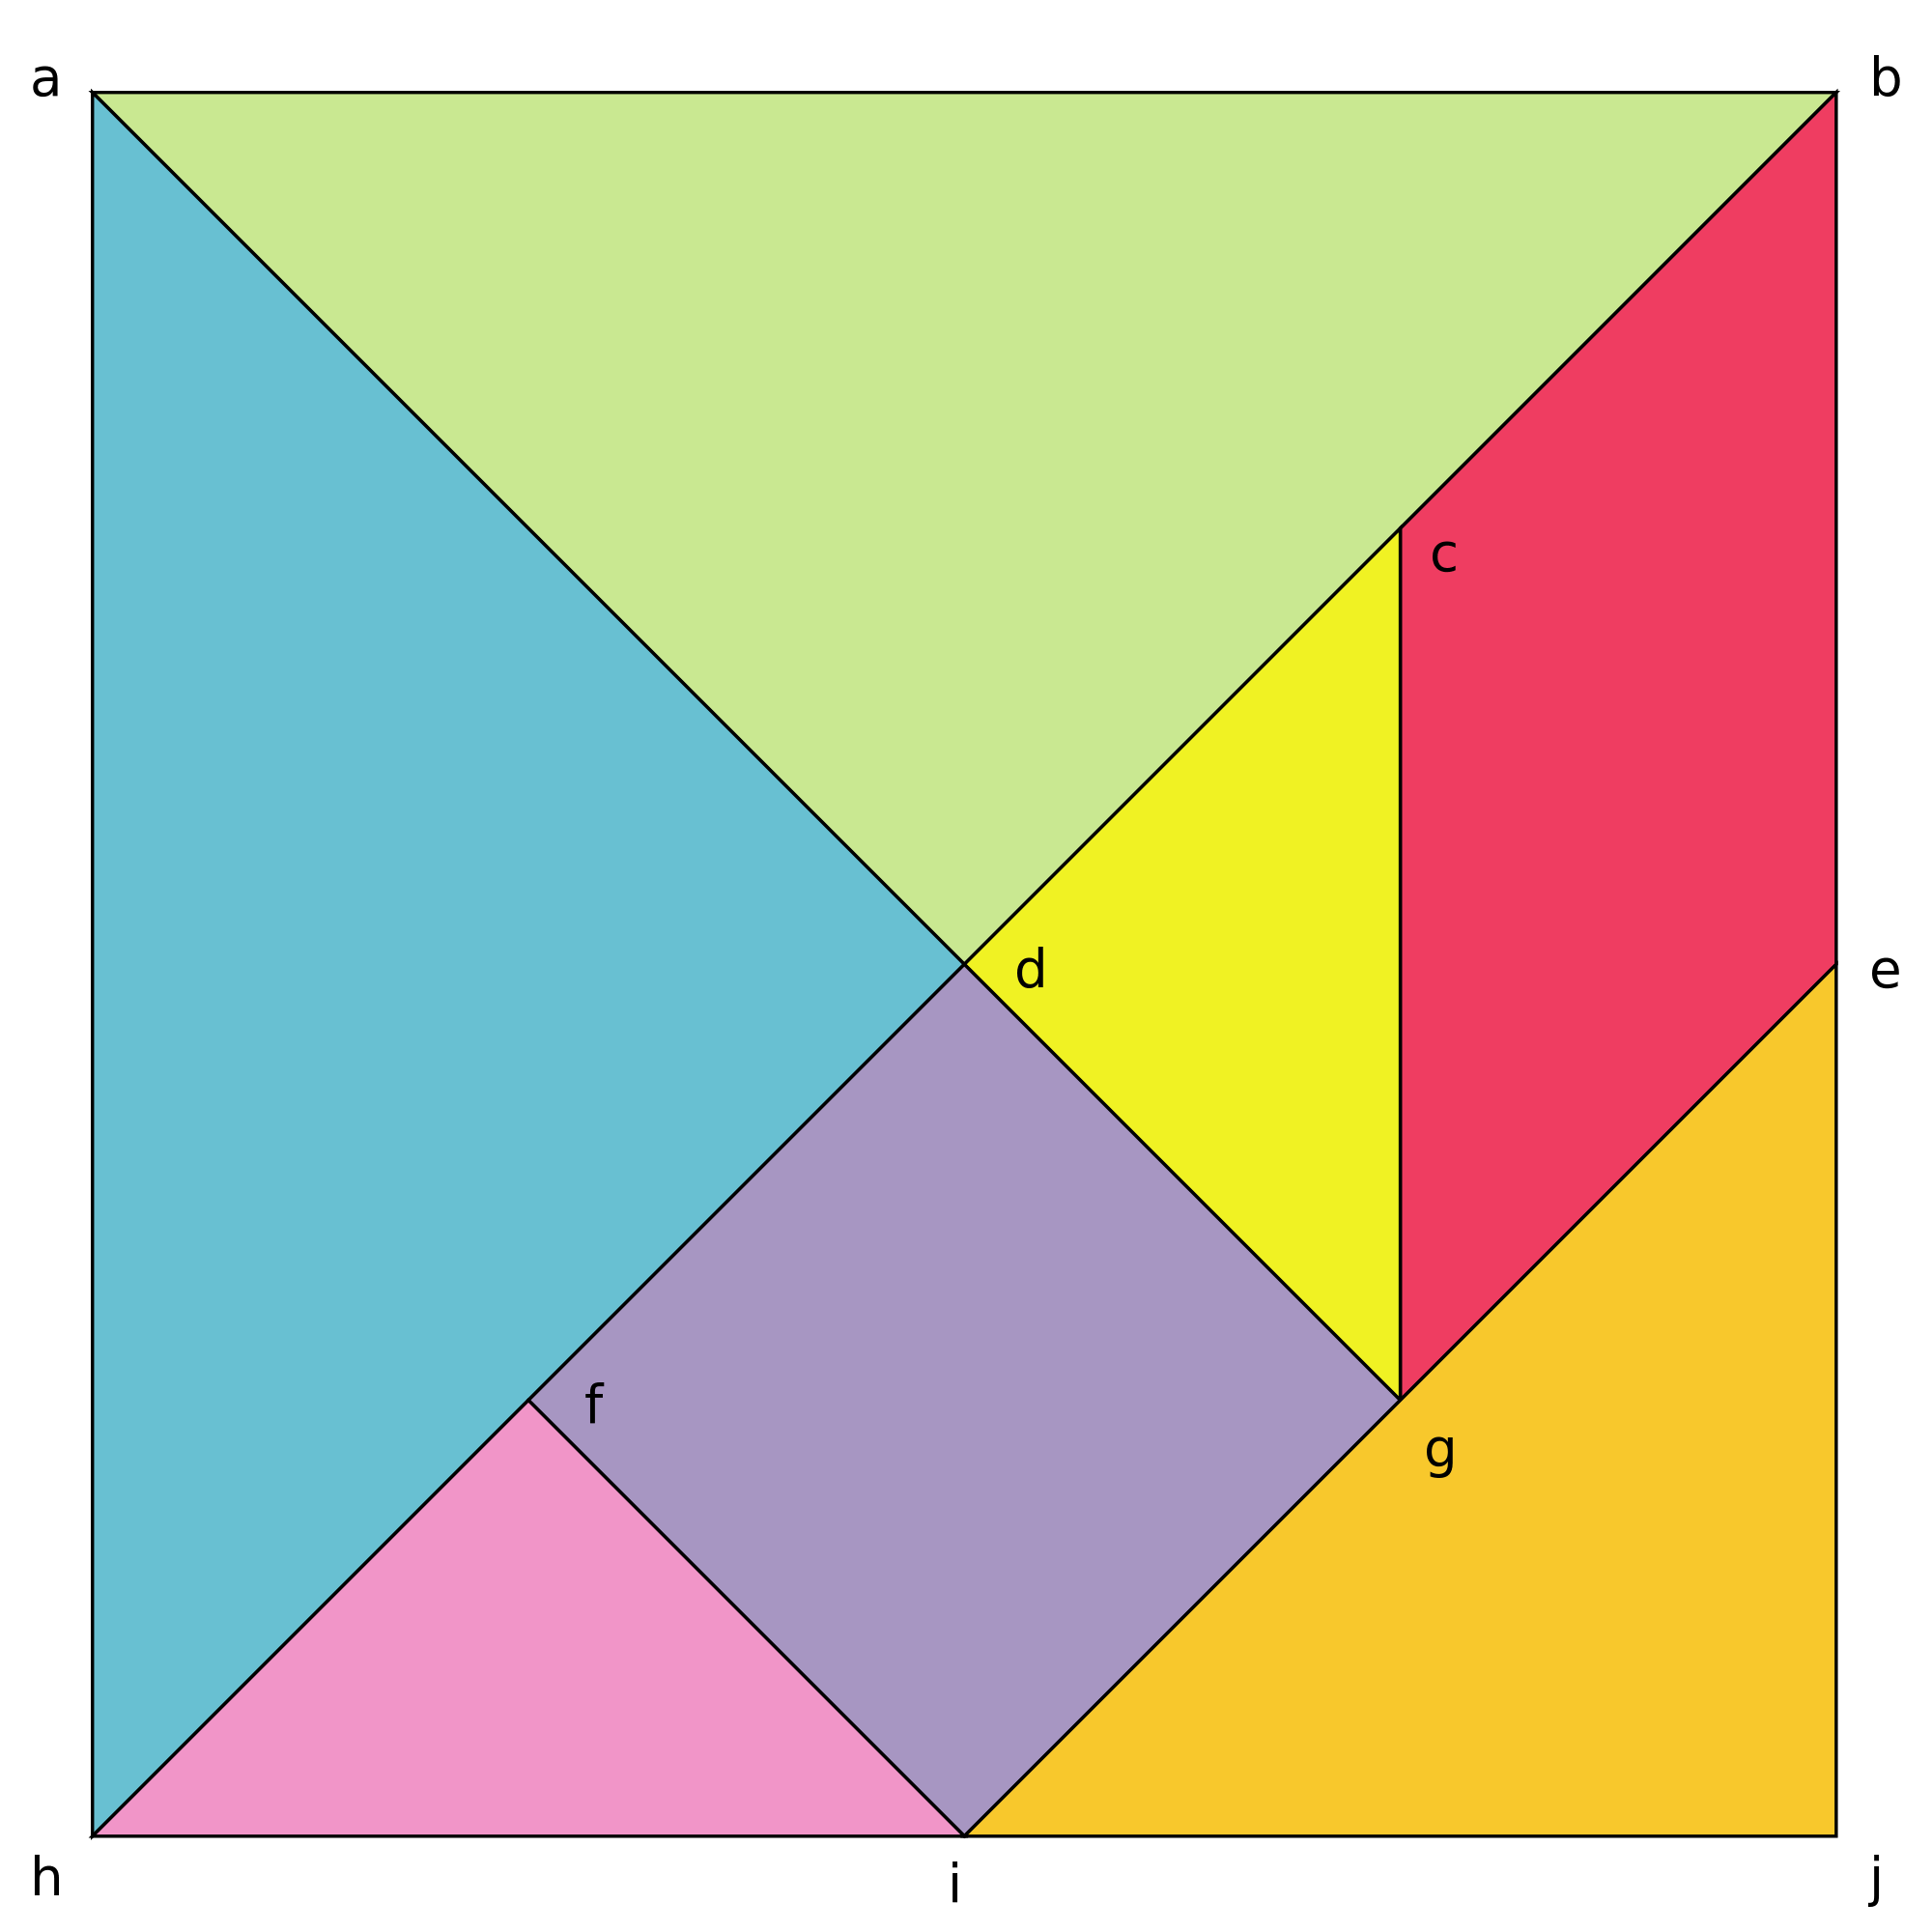 hight resolution of Geometric Shapes Tangram Puzzle Worksheets   Printable Worksheets and  Activities for Teachers